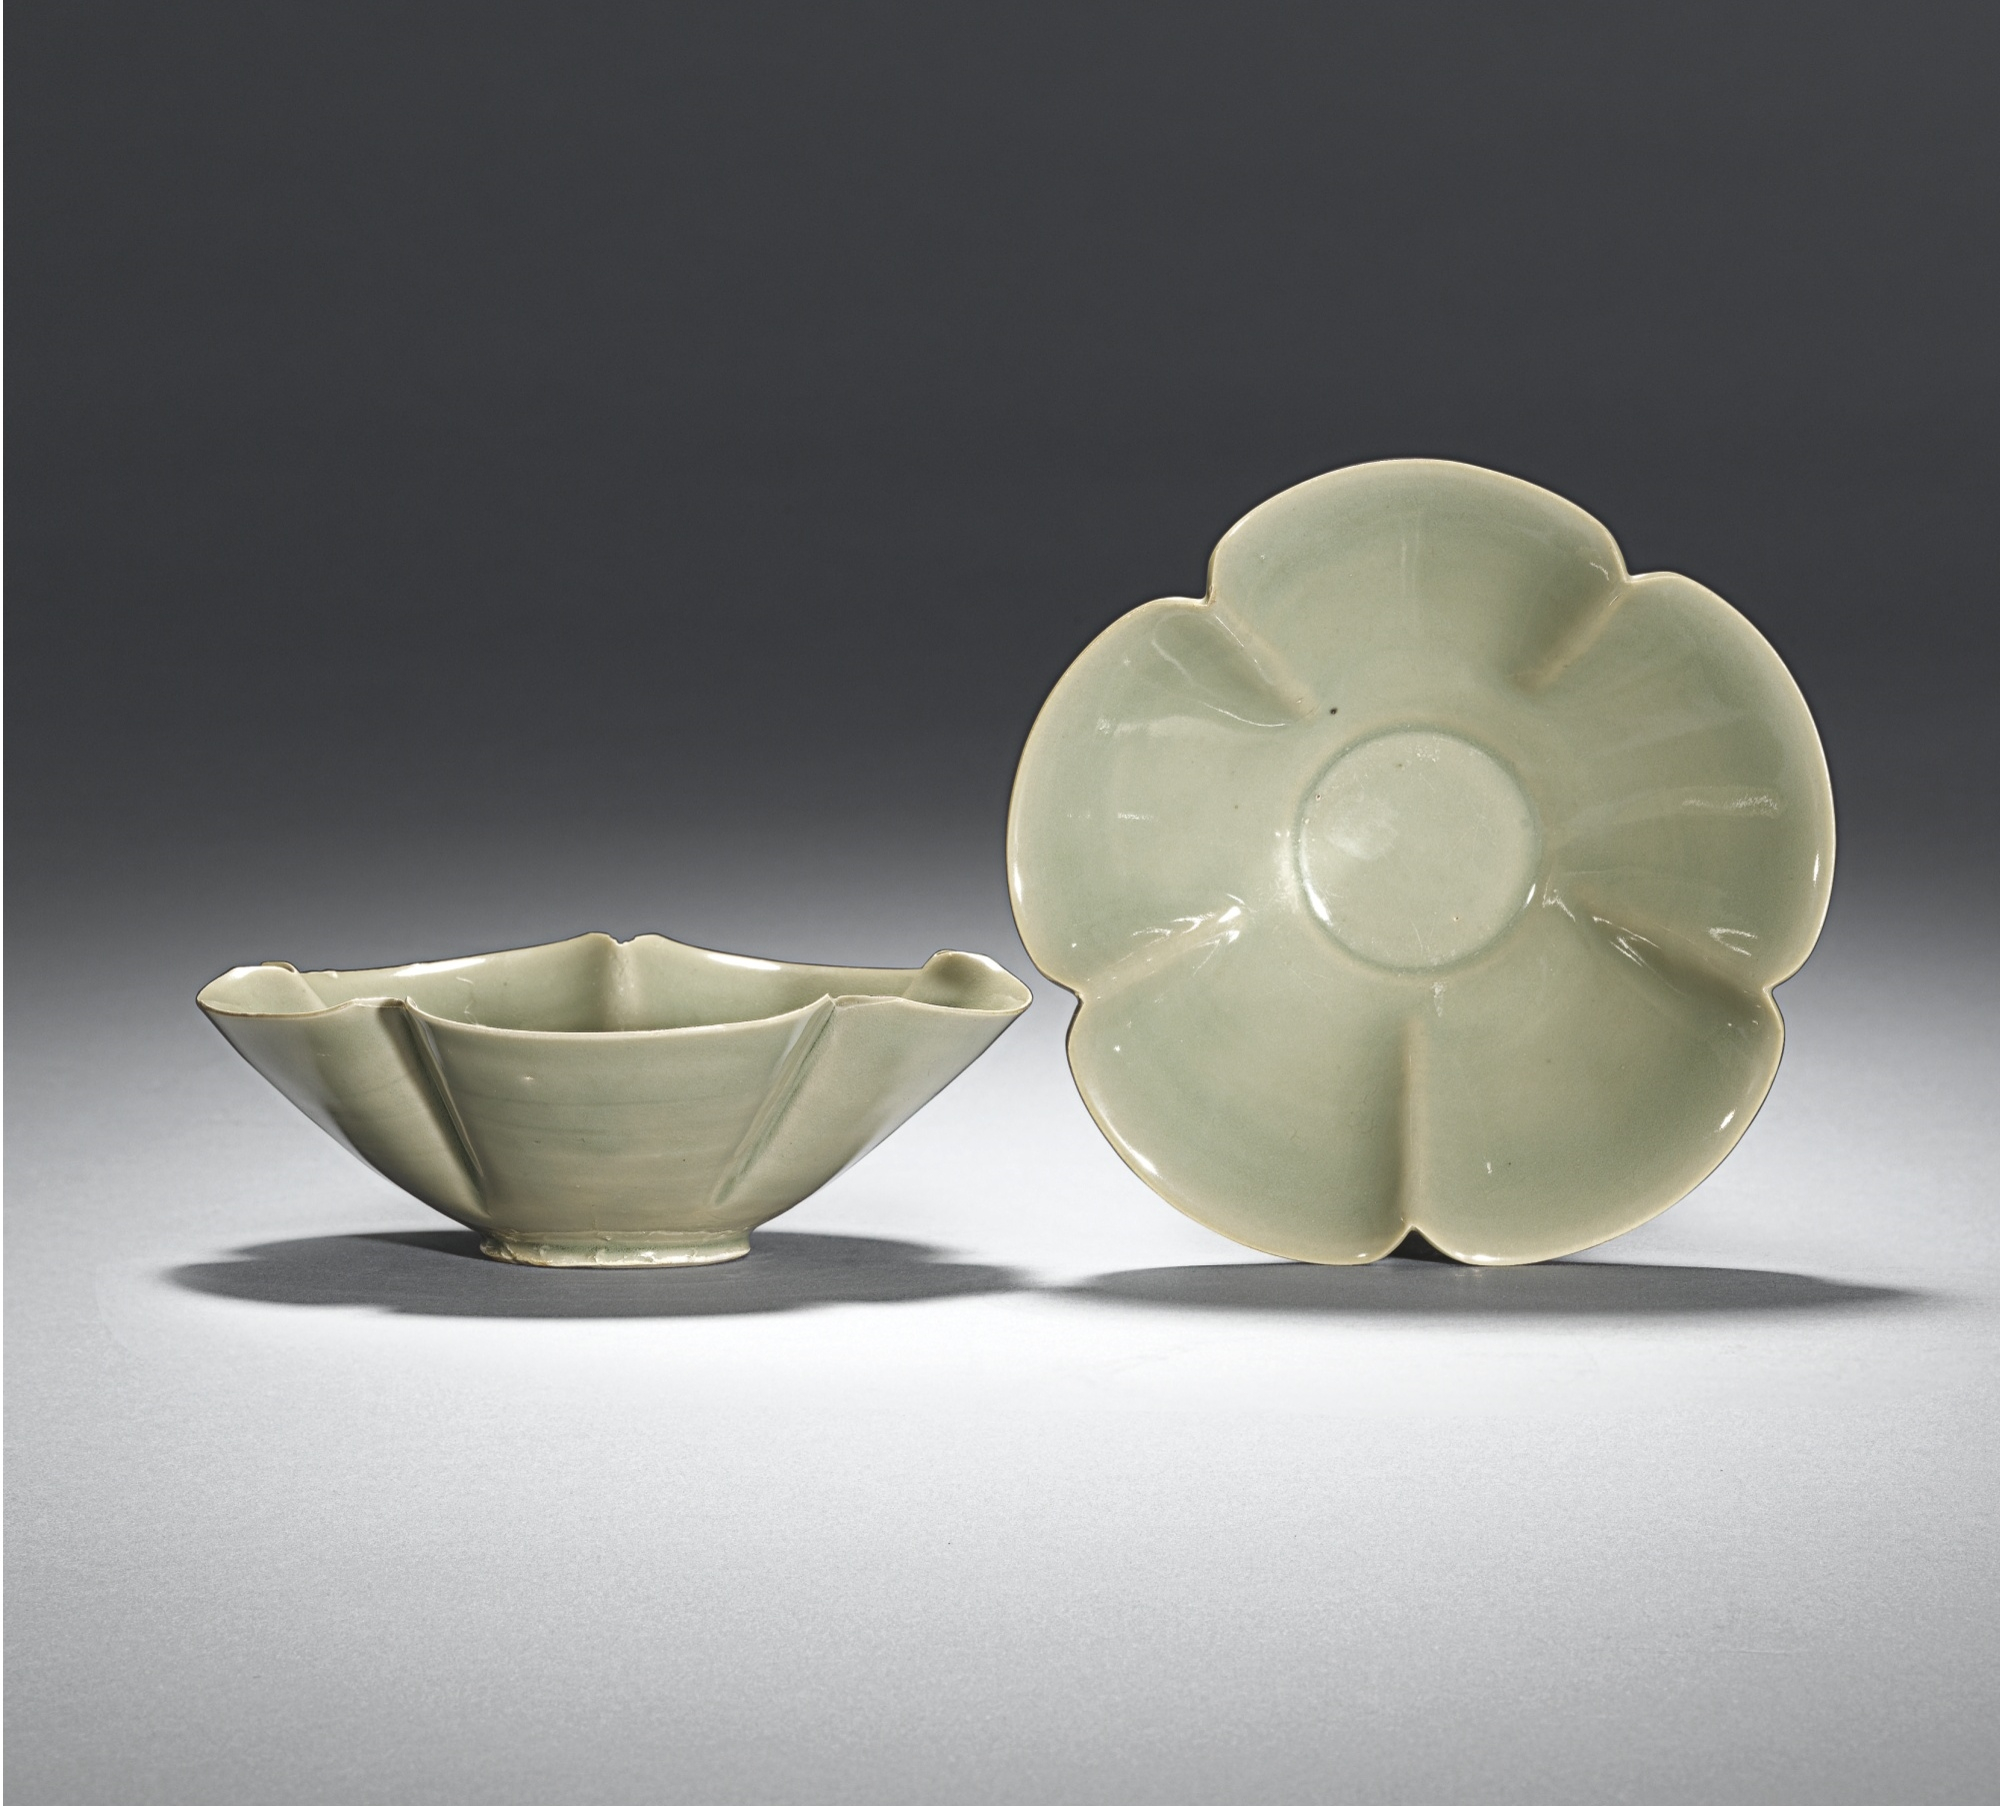 Lot 1. An exquisite pair of Yaozhou flower-shaped bowls, Five dynasties, 10th Century; 12.8cm., 5 1/8 in. Estimate 25,000—30,000 GBP. Lot Sold 67,250 GBP. Photo Sotheby's